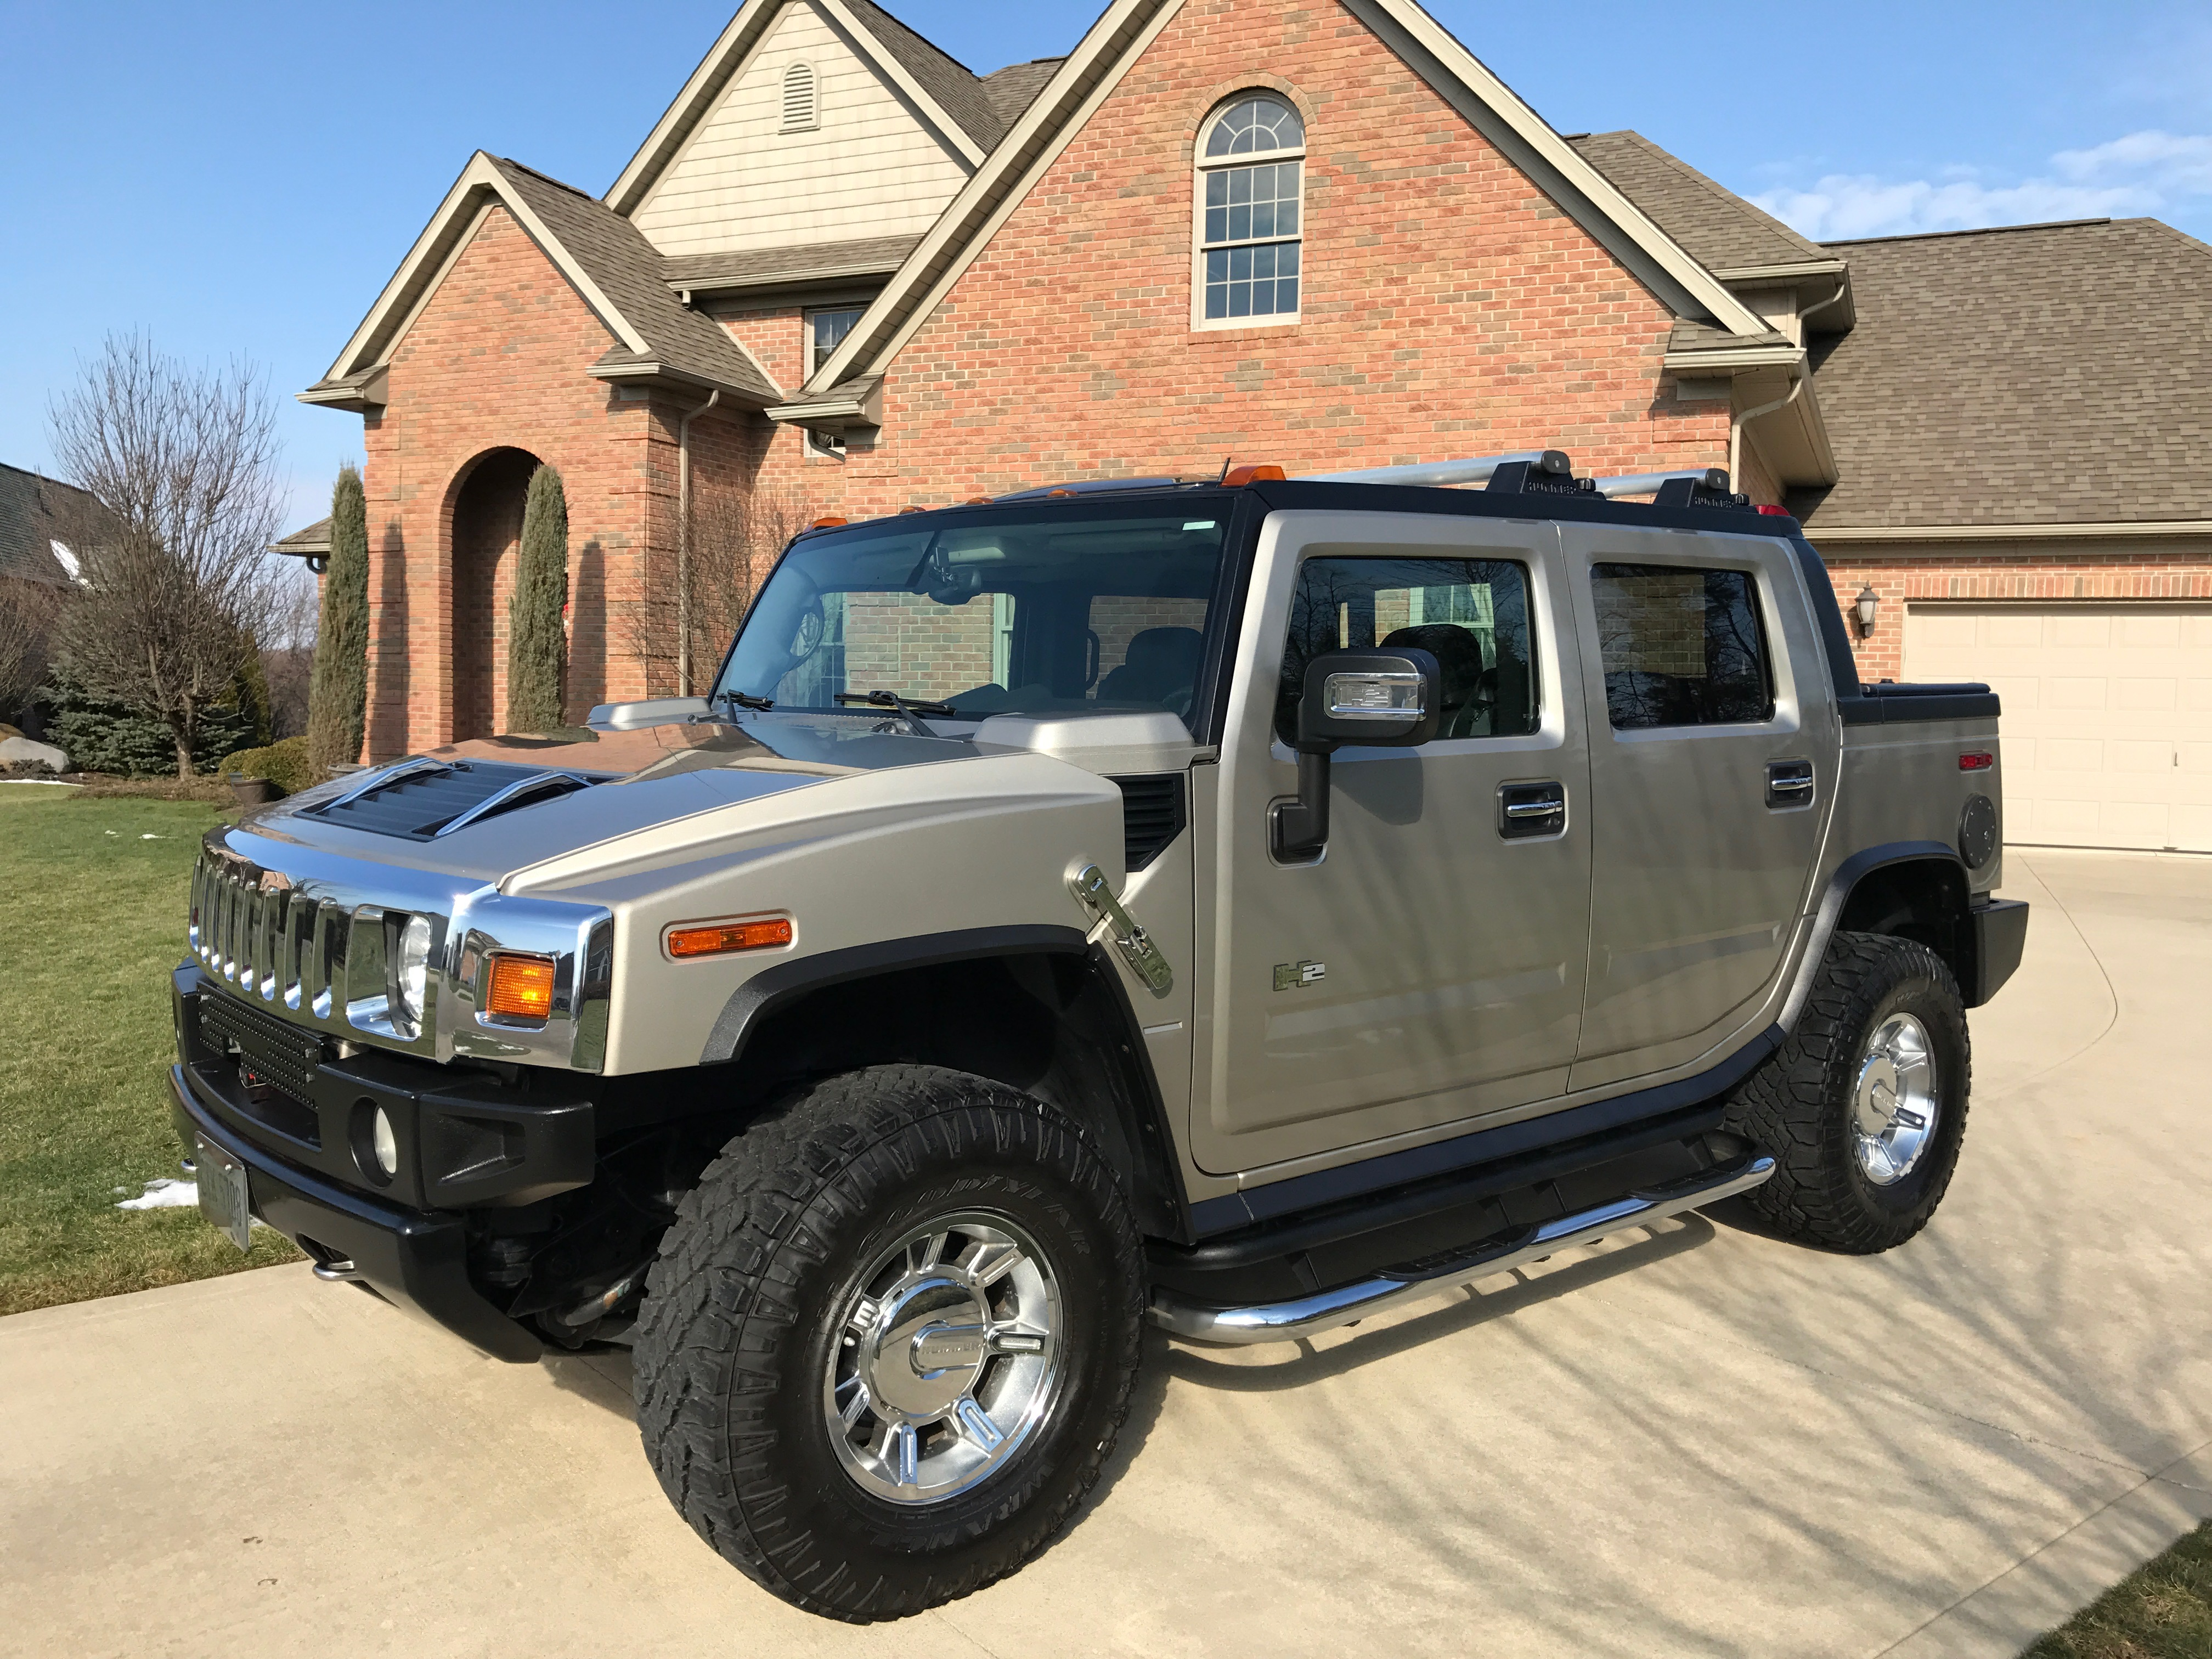 2005 h2 sut Hummer Forums Enthusiast Forum for Hummer Owners